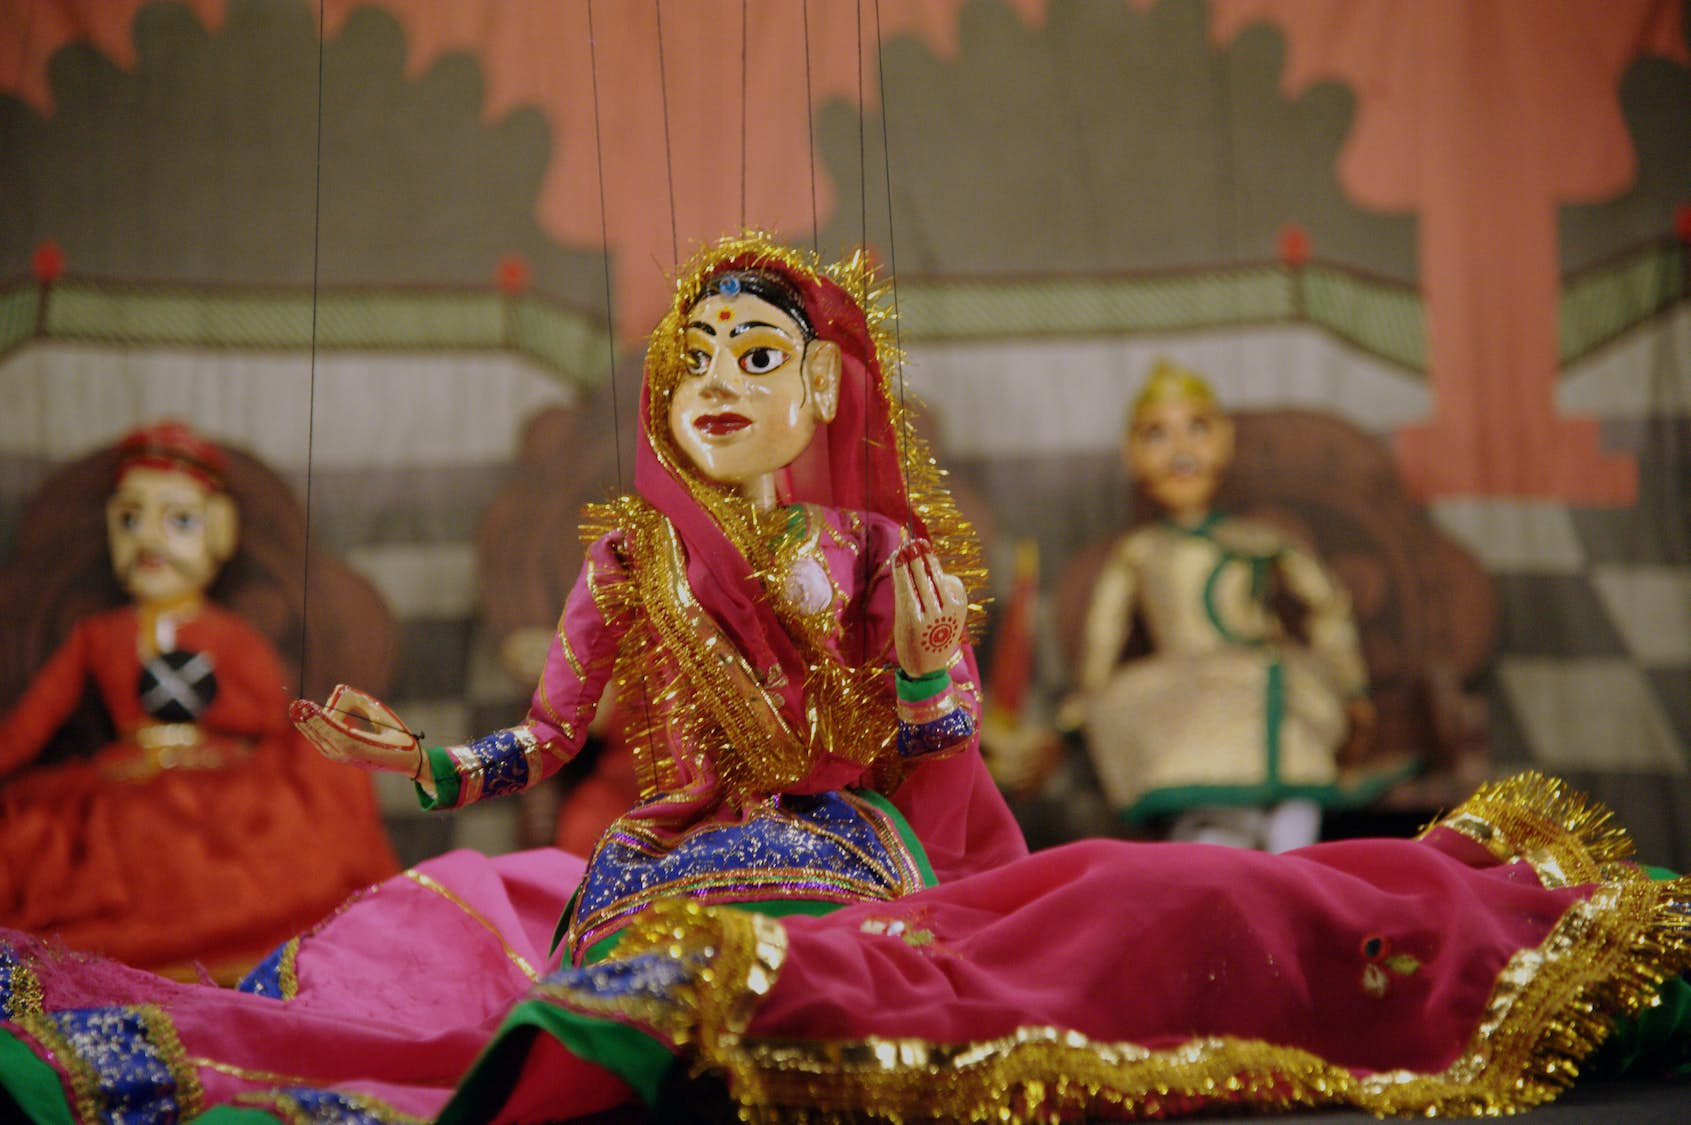 The puppetry art of India